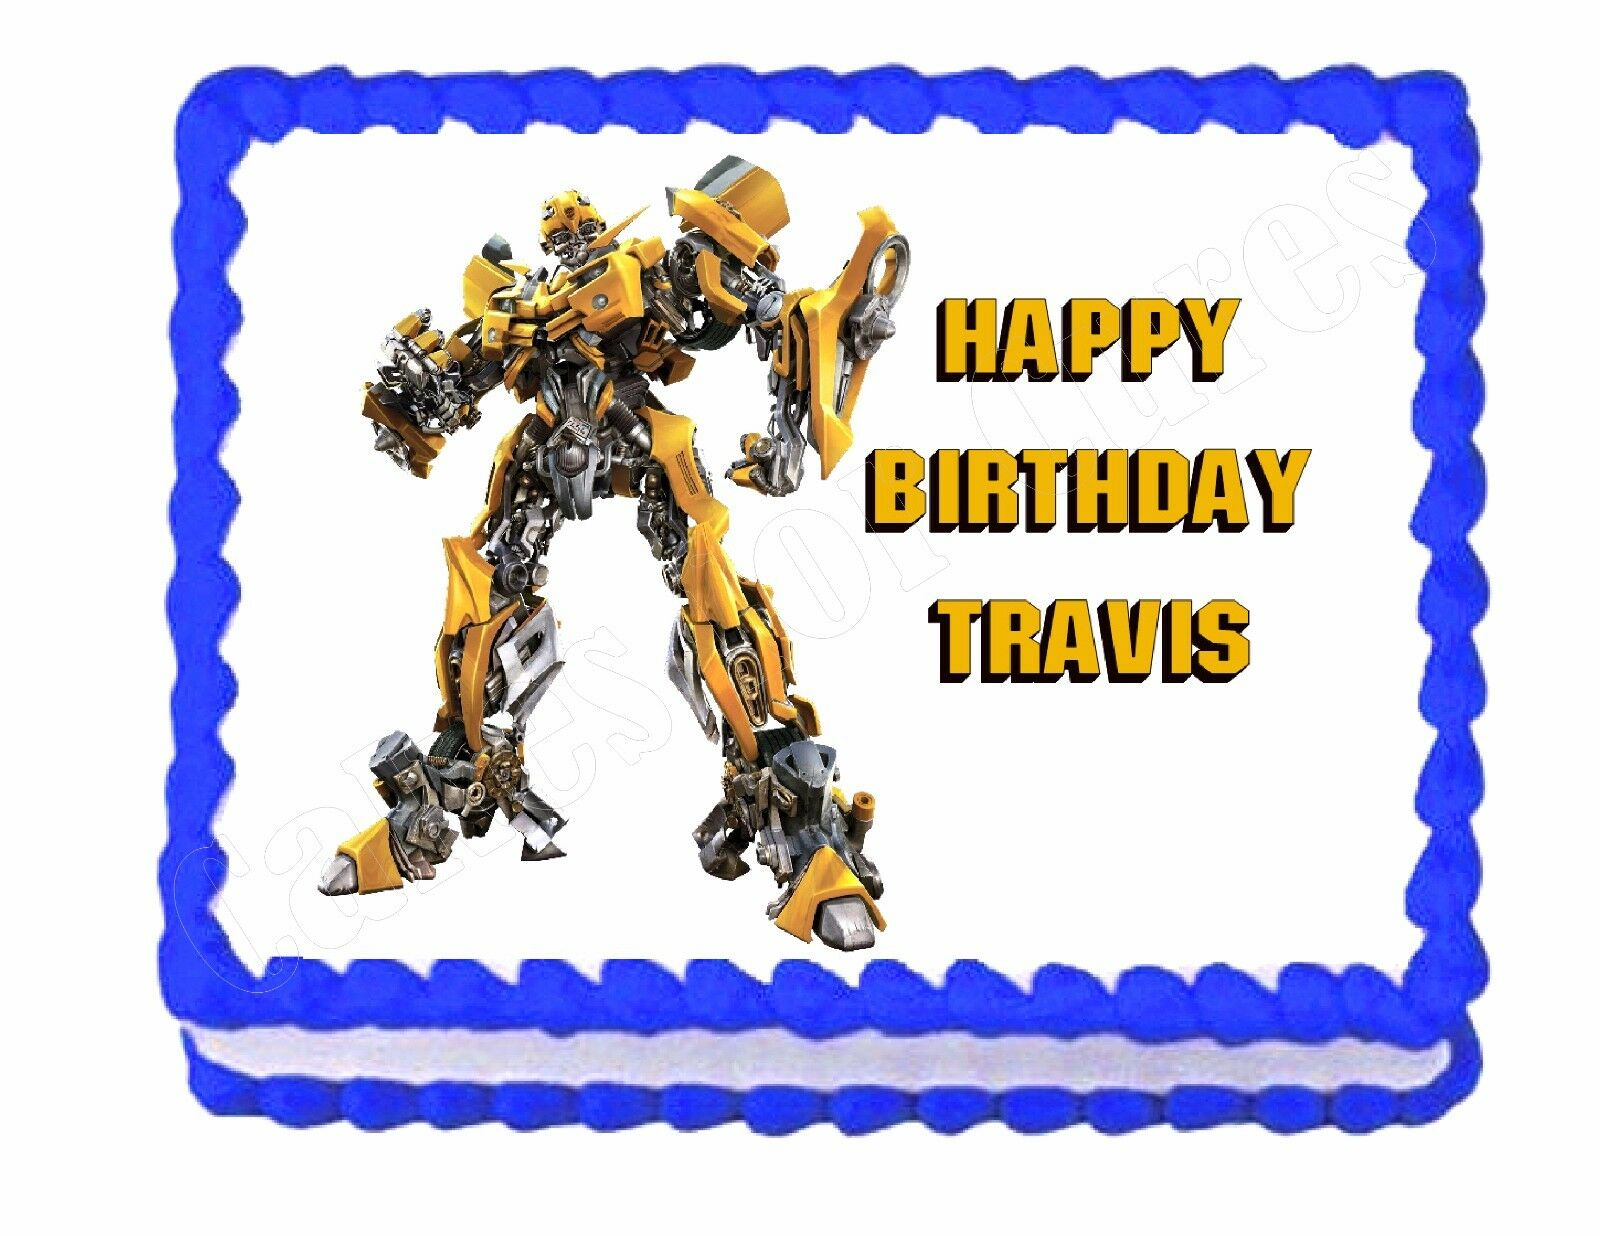 Edible Cake Decorations Transformers : Transformers edible cake image cake topper decoration   USD8 ...